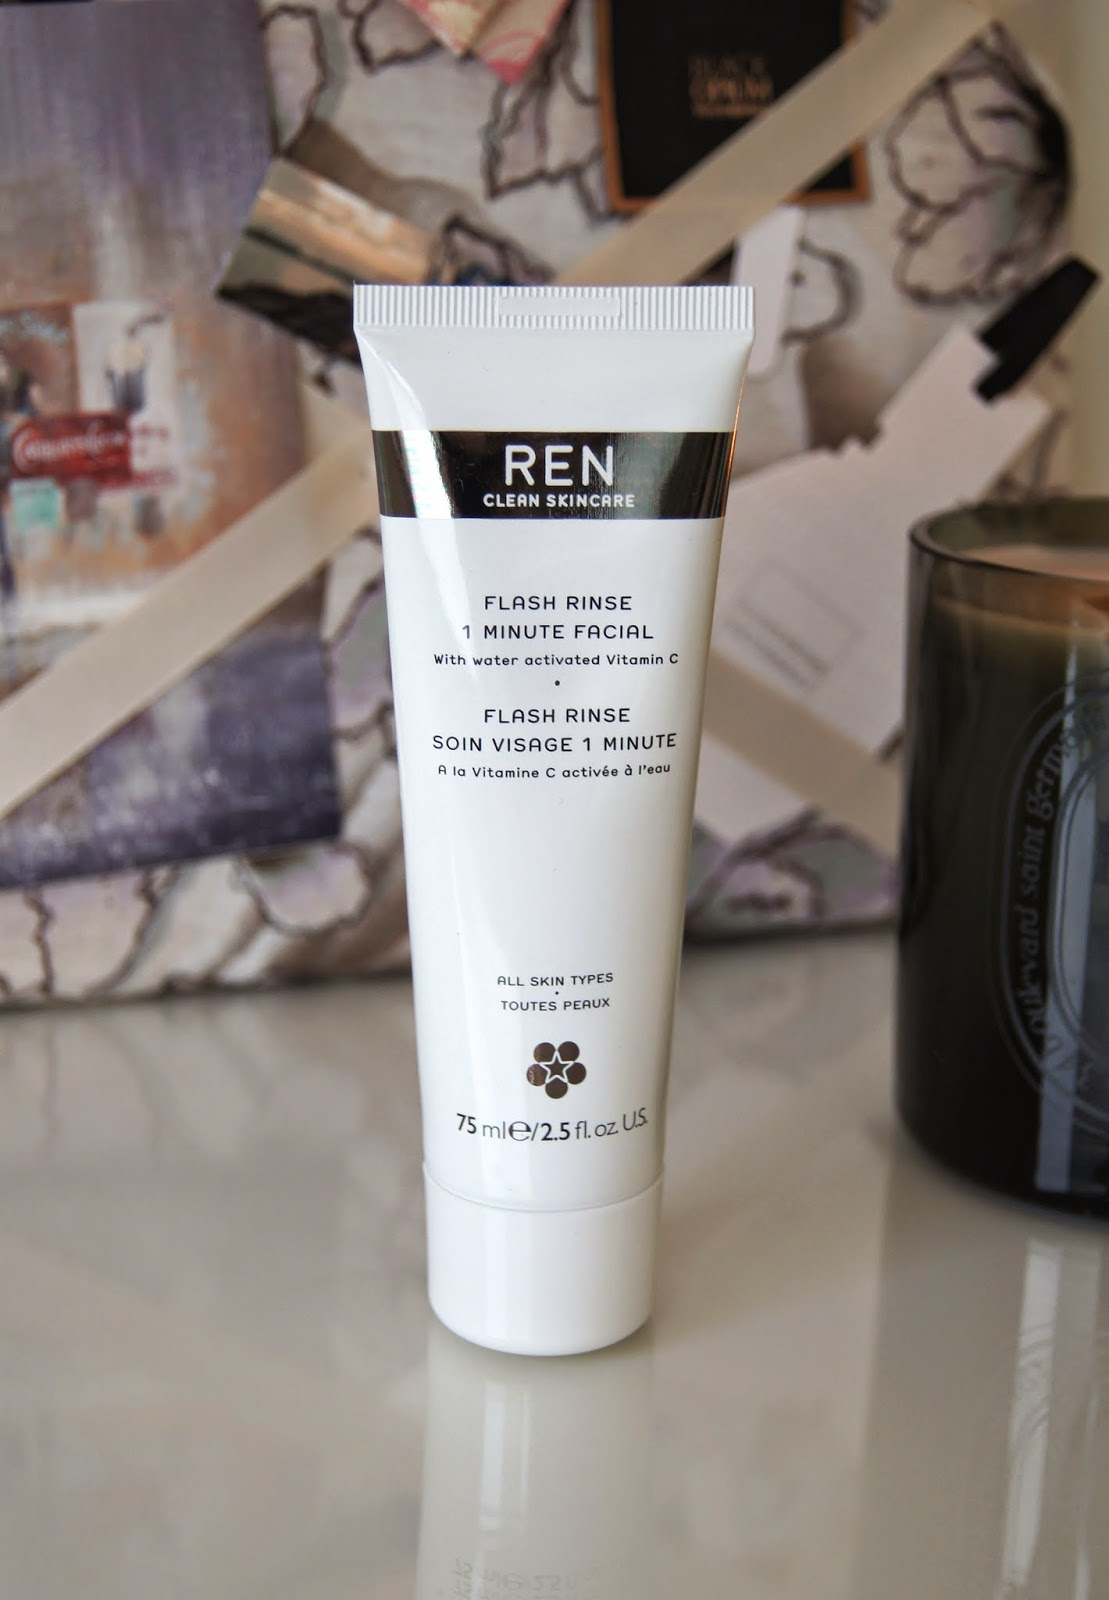 ren flash rinse 1 minute facial treatment review